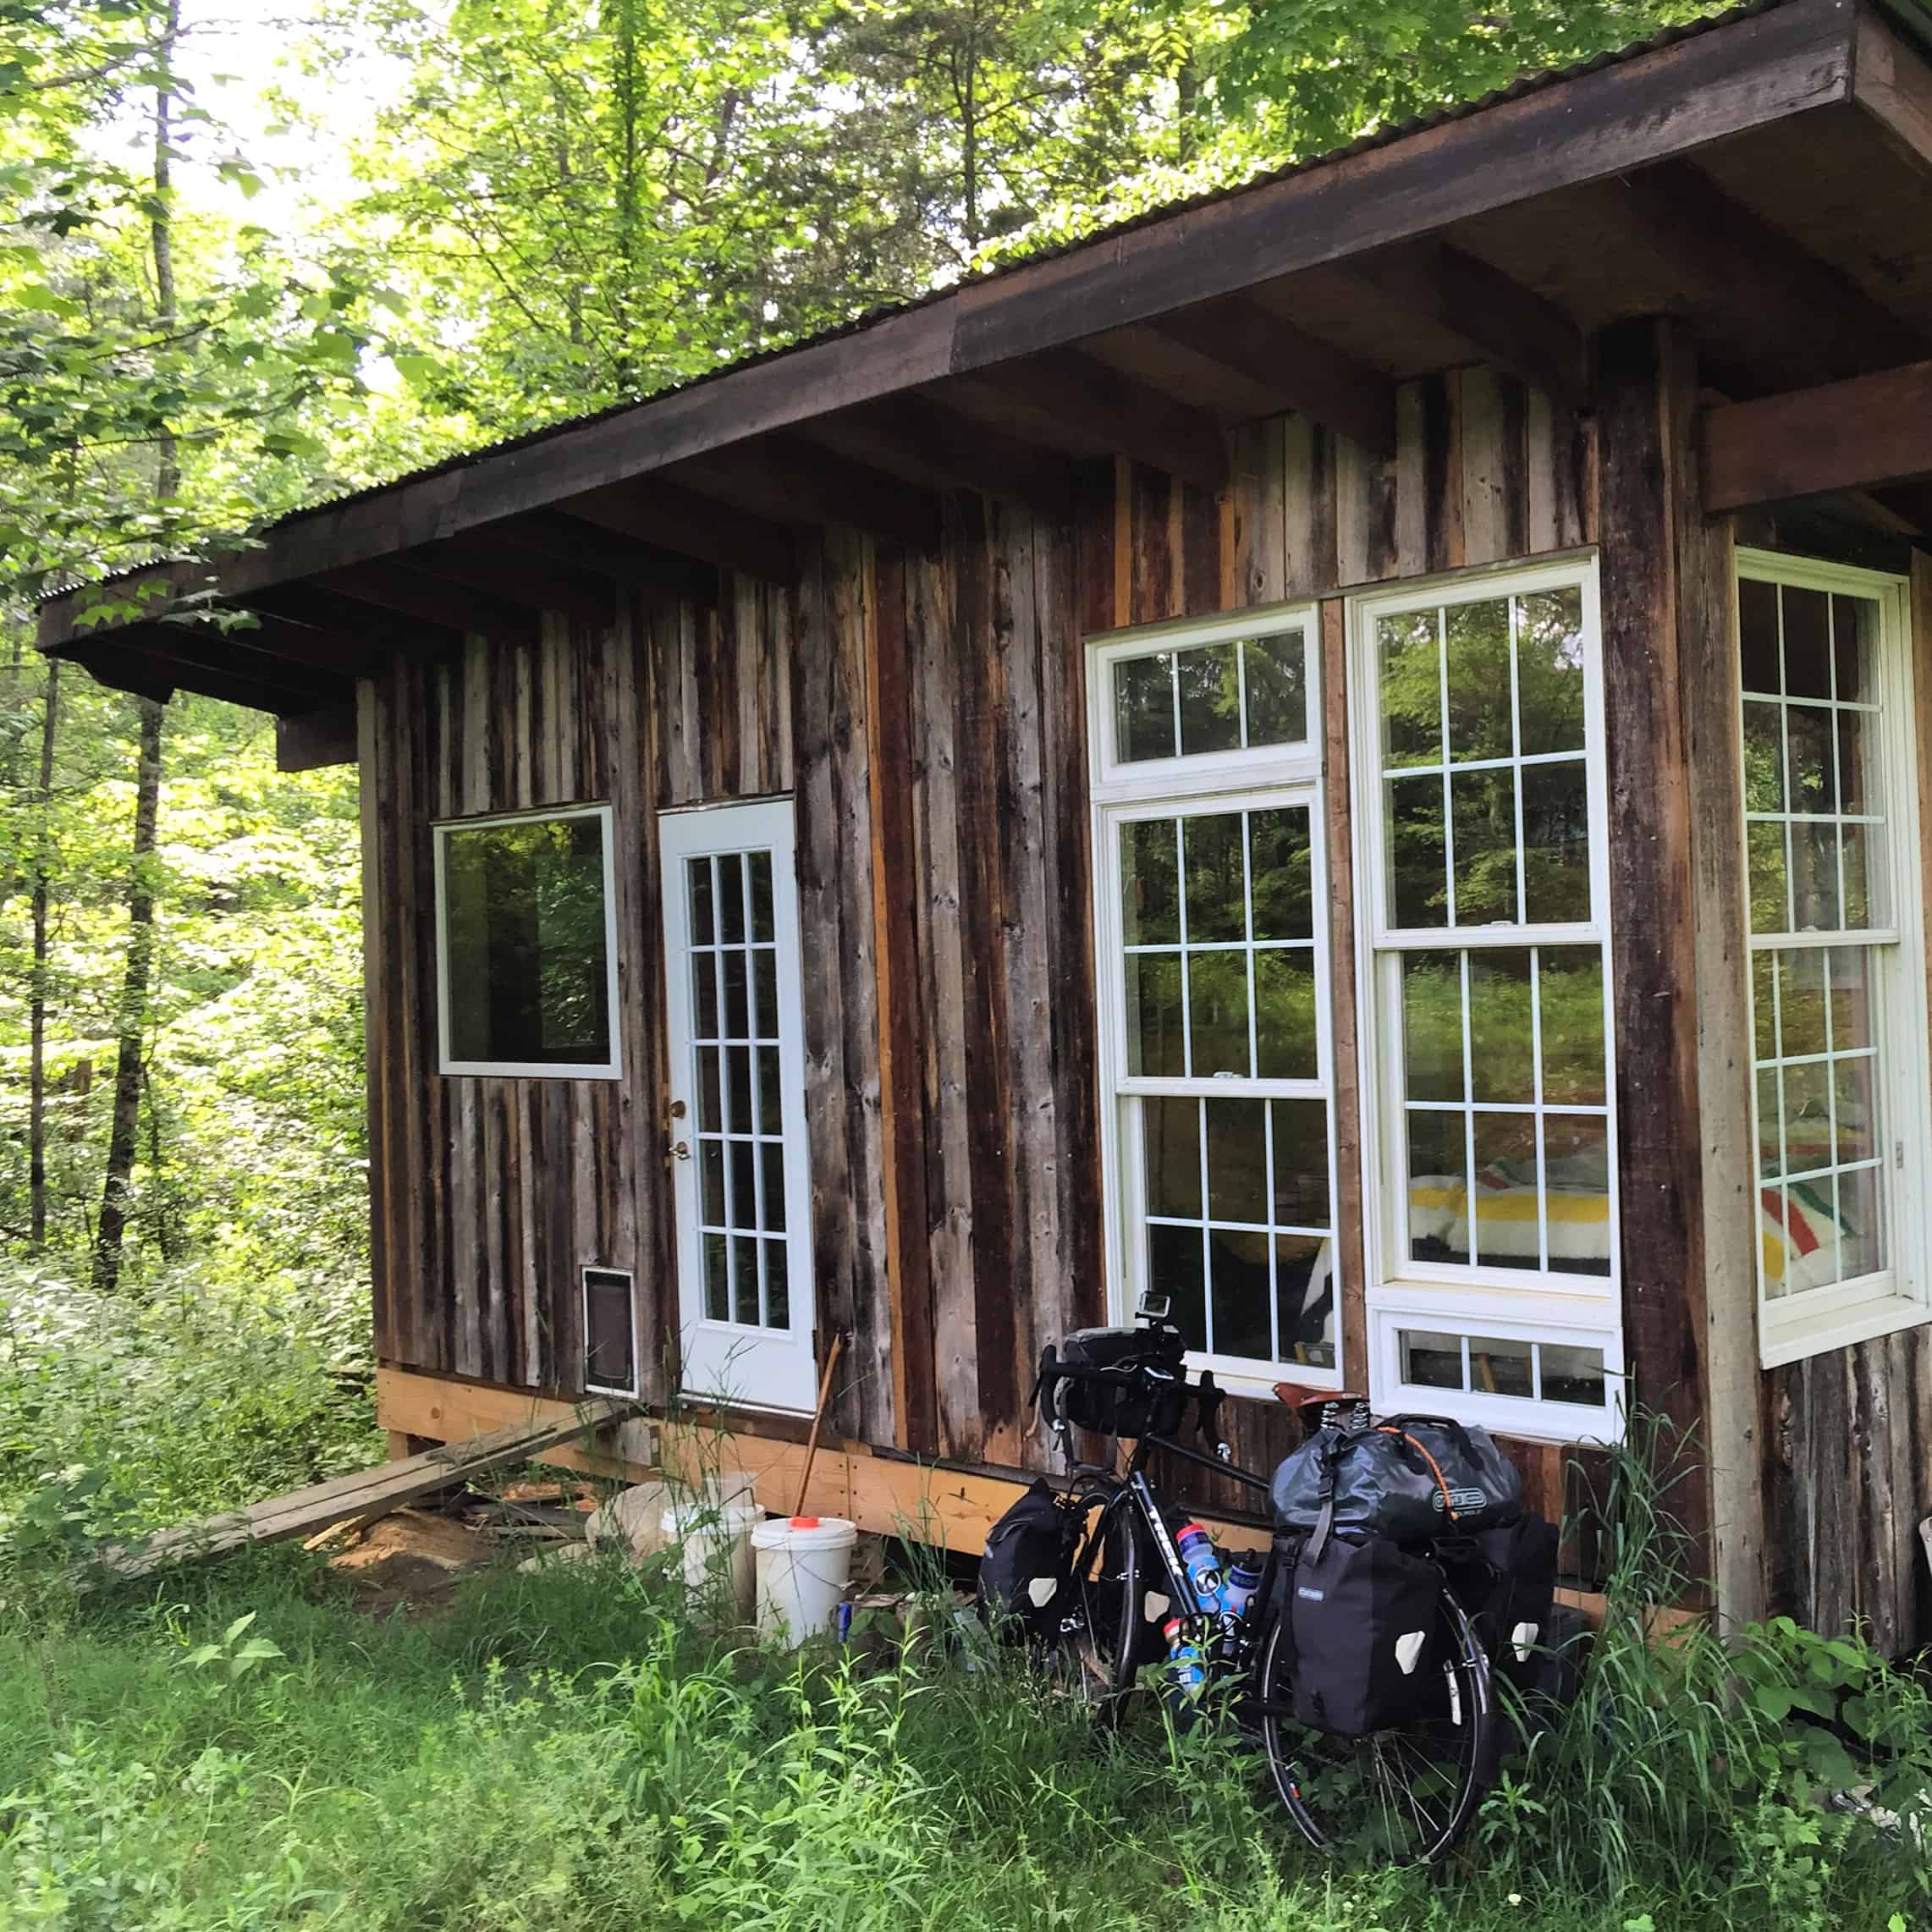 My super cute home for tonight. It was supposed to rain all day today. Which obviously didn't happen. Last night in a lame attempt to avoid camping in the rain, I reached out to another cross country cyclist who lives close to where I was going to end the day. She was out of town, but gave me directions to stay at her little cabin in the middle of the woods. I love it here! #biketouring #warmshowers #community #tinyhouse #offthegrid